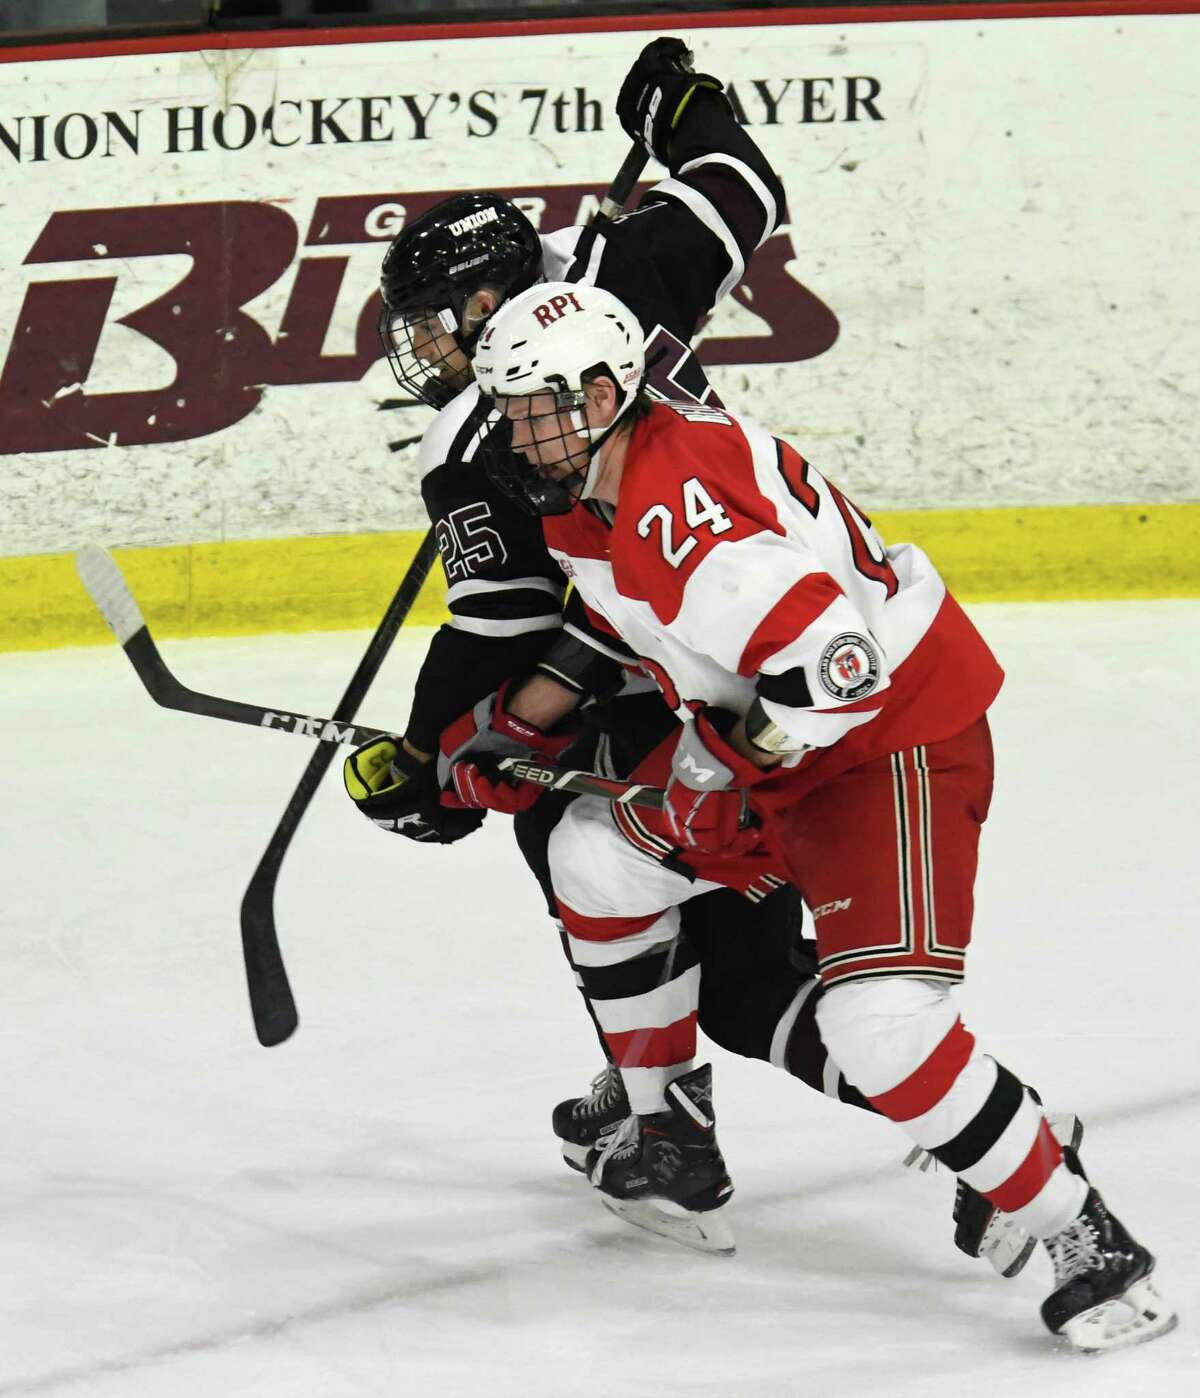 RPI defenseman Will Reilly and Union forward Ryan Walker pursue the puck during a game on Saturday, Oct. 27, 2018 at Union College in Schenectady, N.Y. (Jenn March, Special to the Times Union)